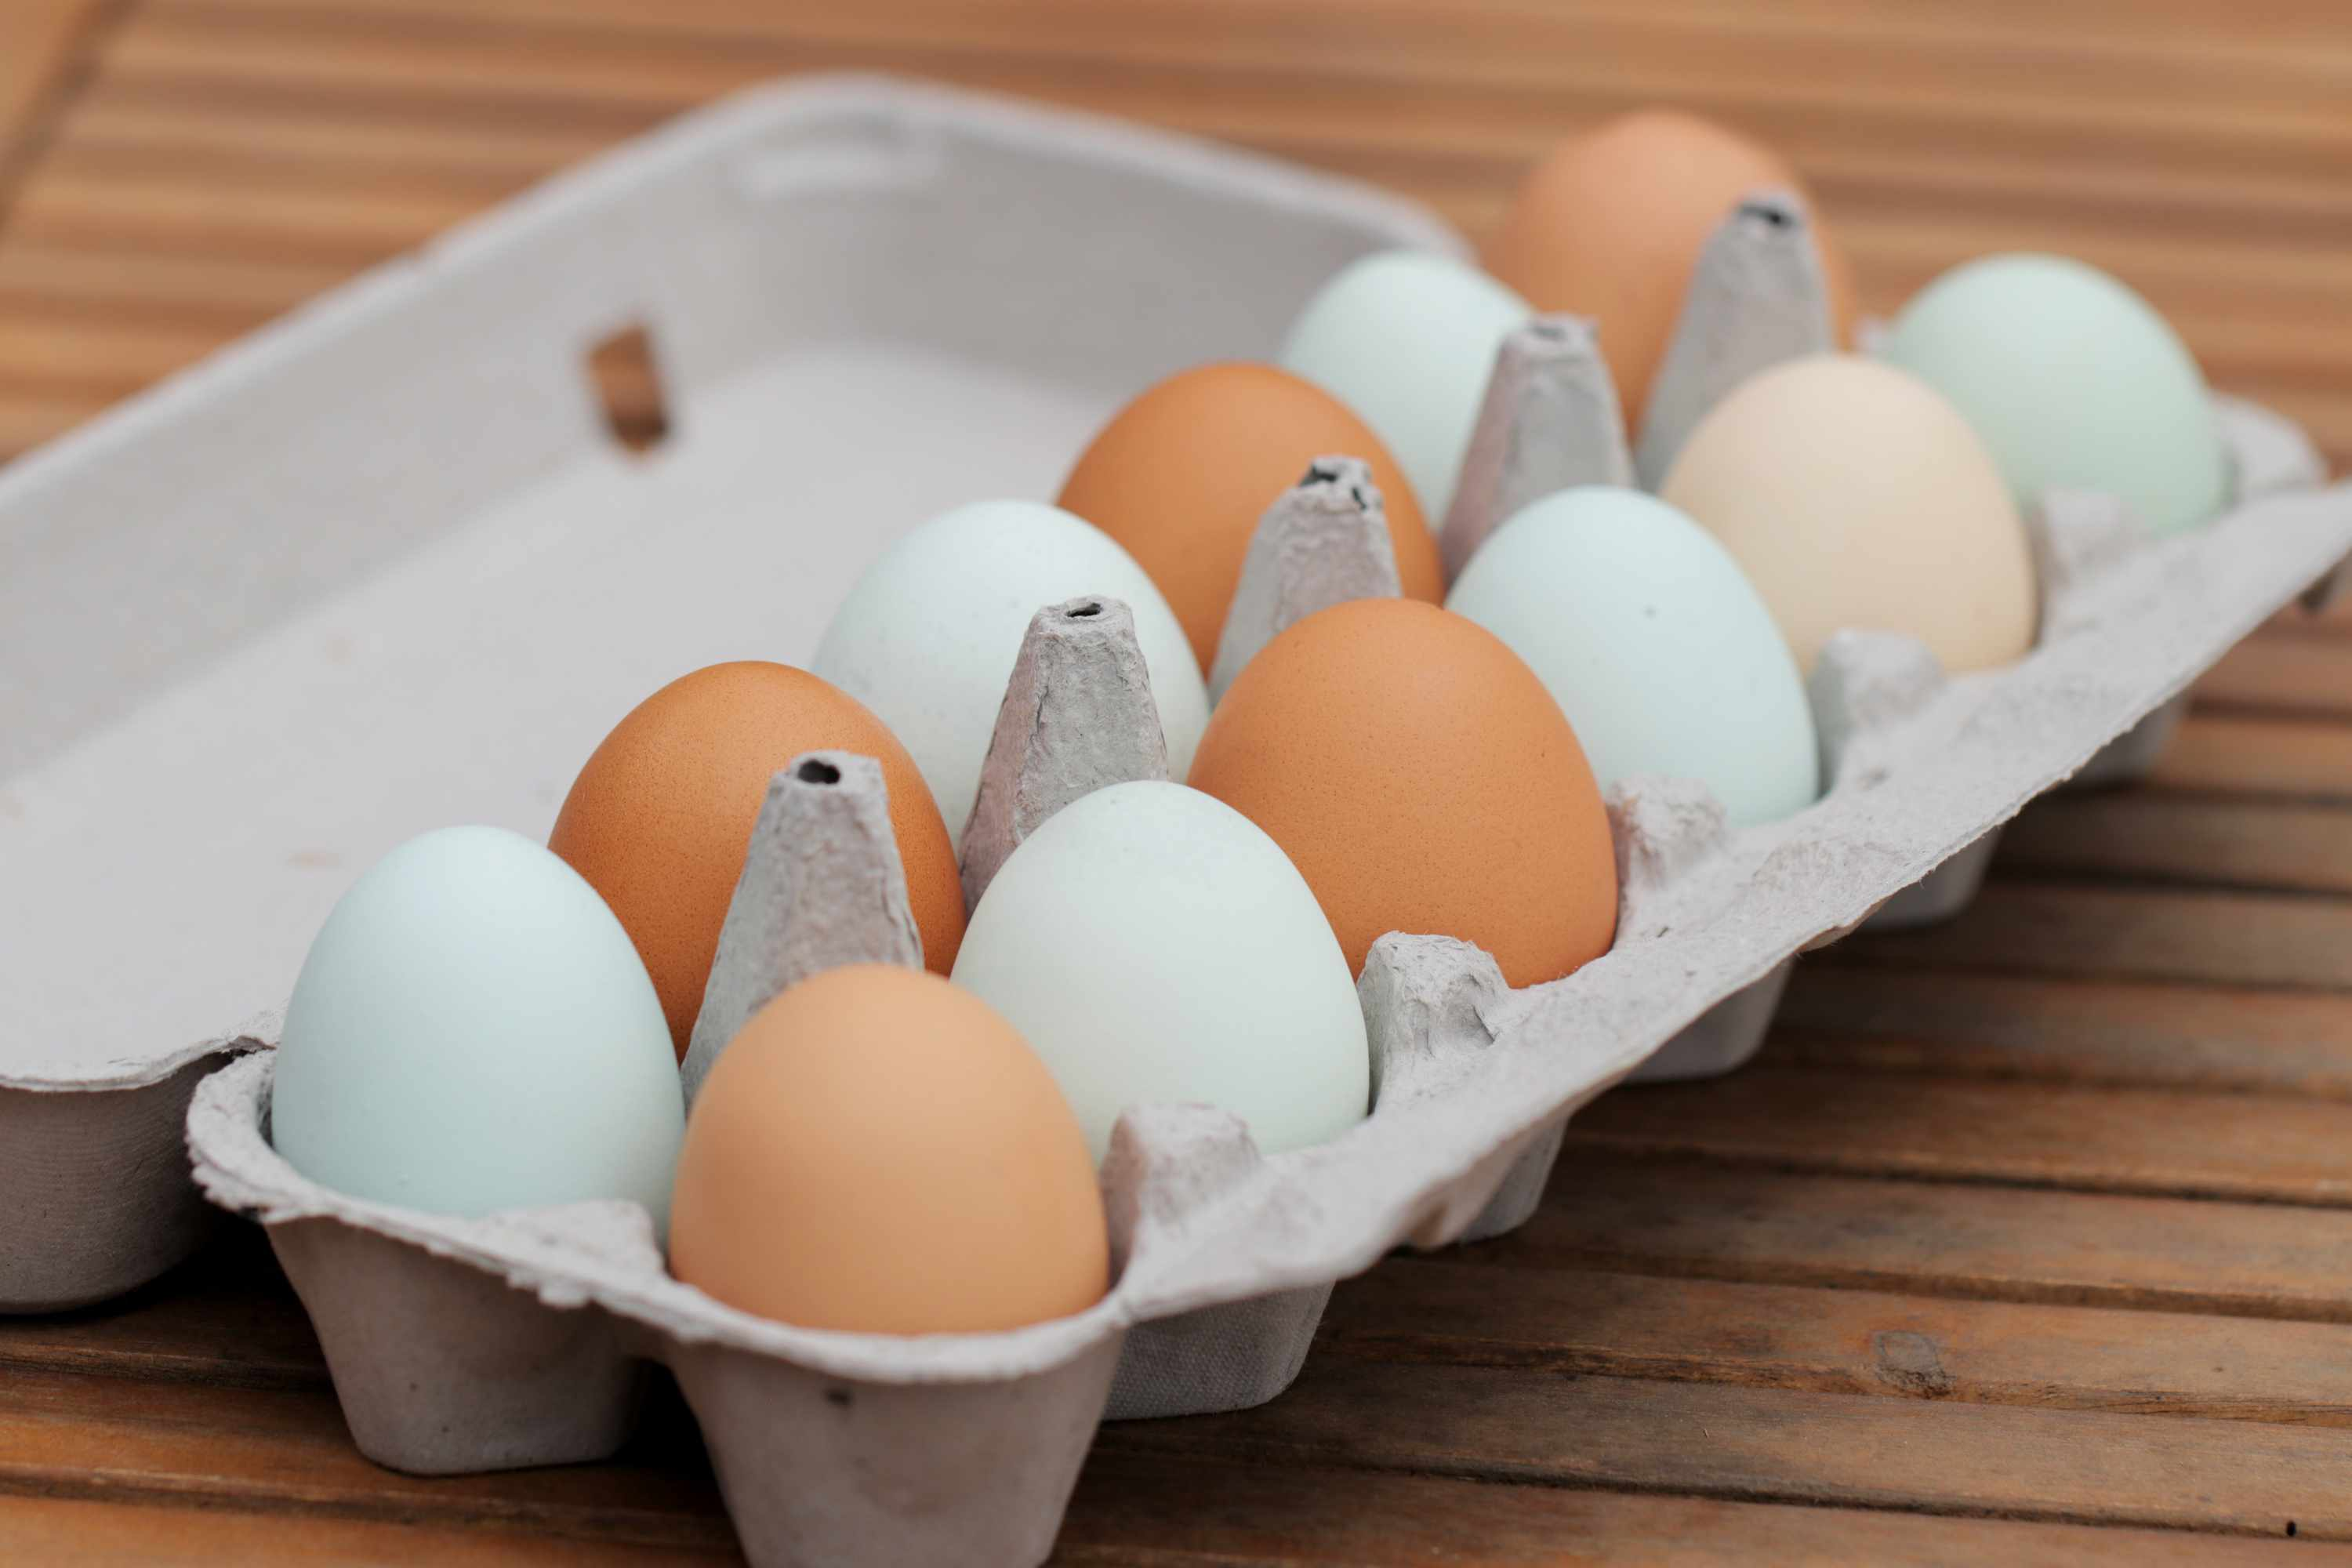 eggs stored in a carton